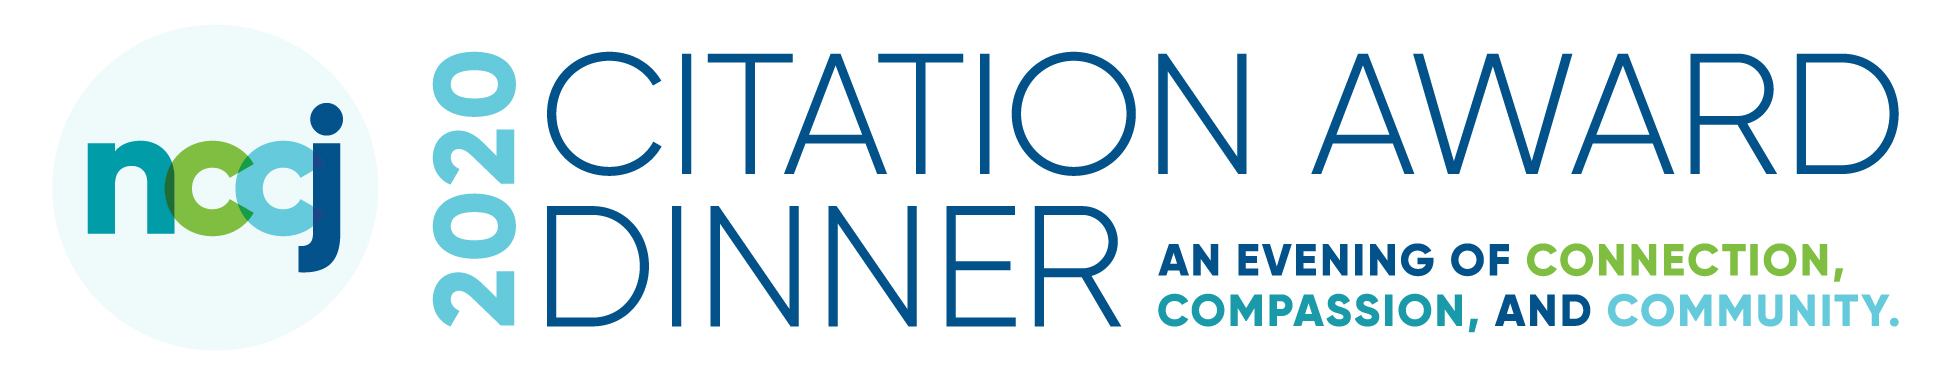 NCCJ's 2020 Citation Award Dinner: An Evening of Connection, Compassion and Community